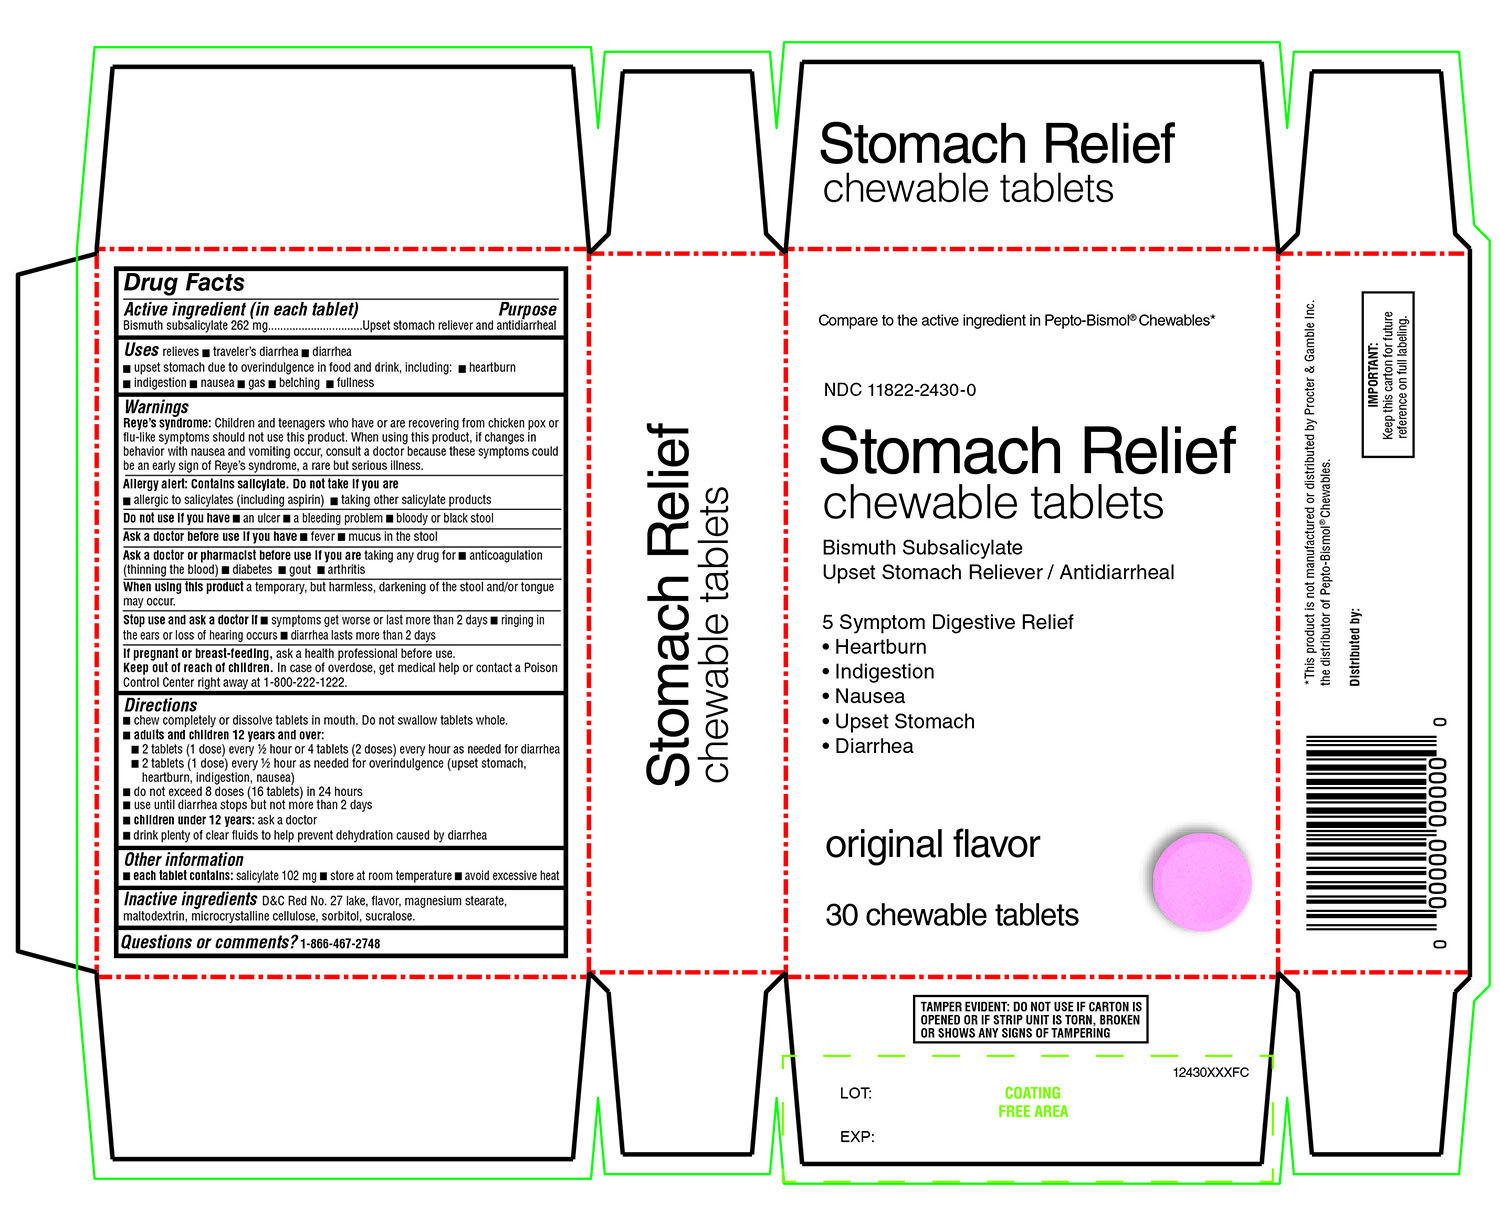 Rite Aid Stomach Relief Chewable Tablets